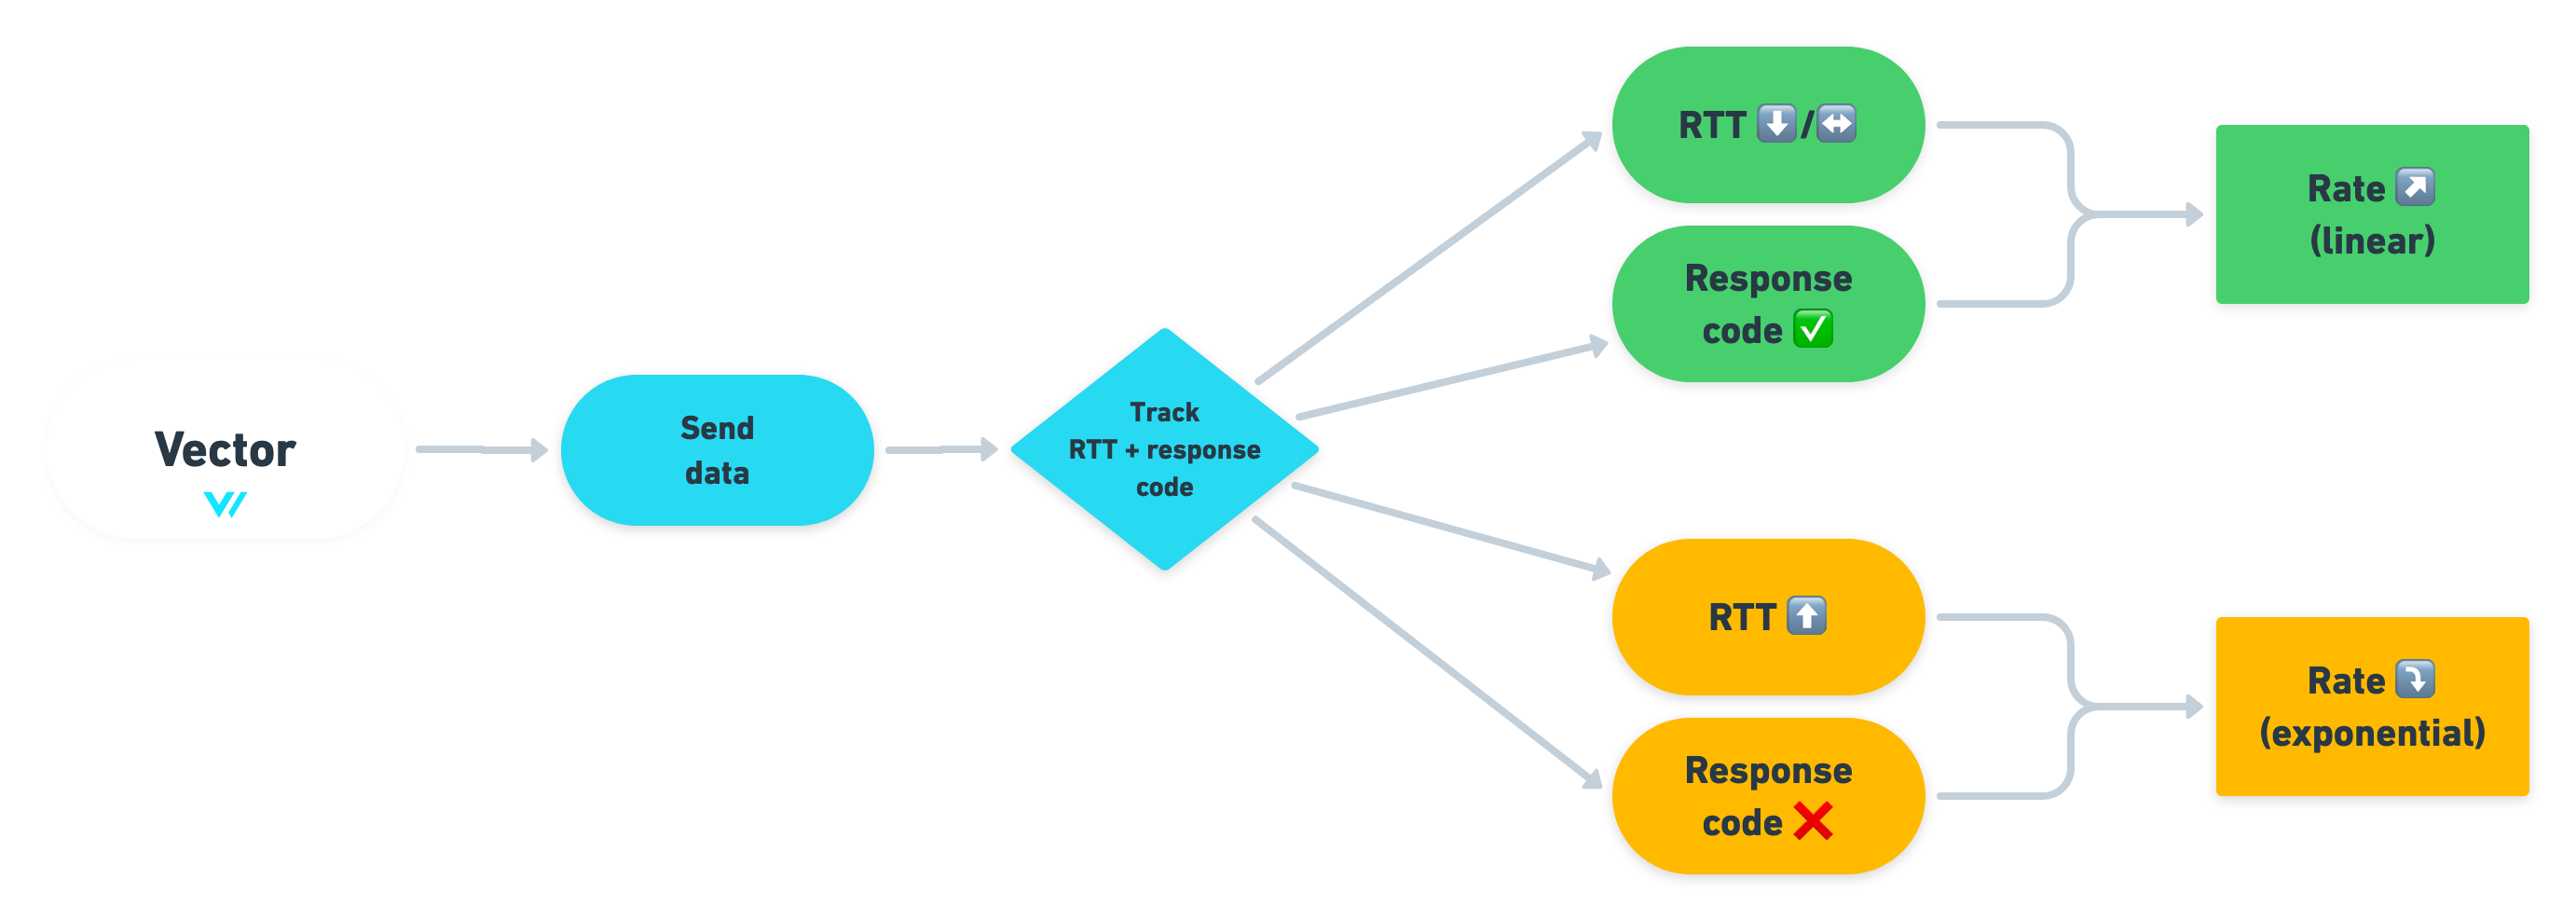 The Adaptive Request Concurrency decision chart